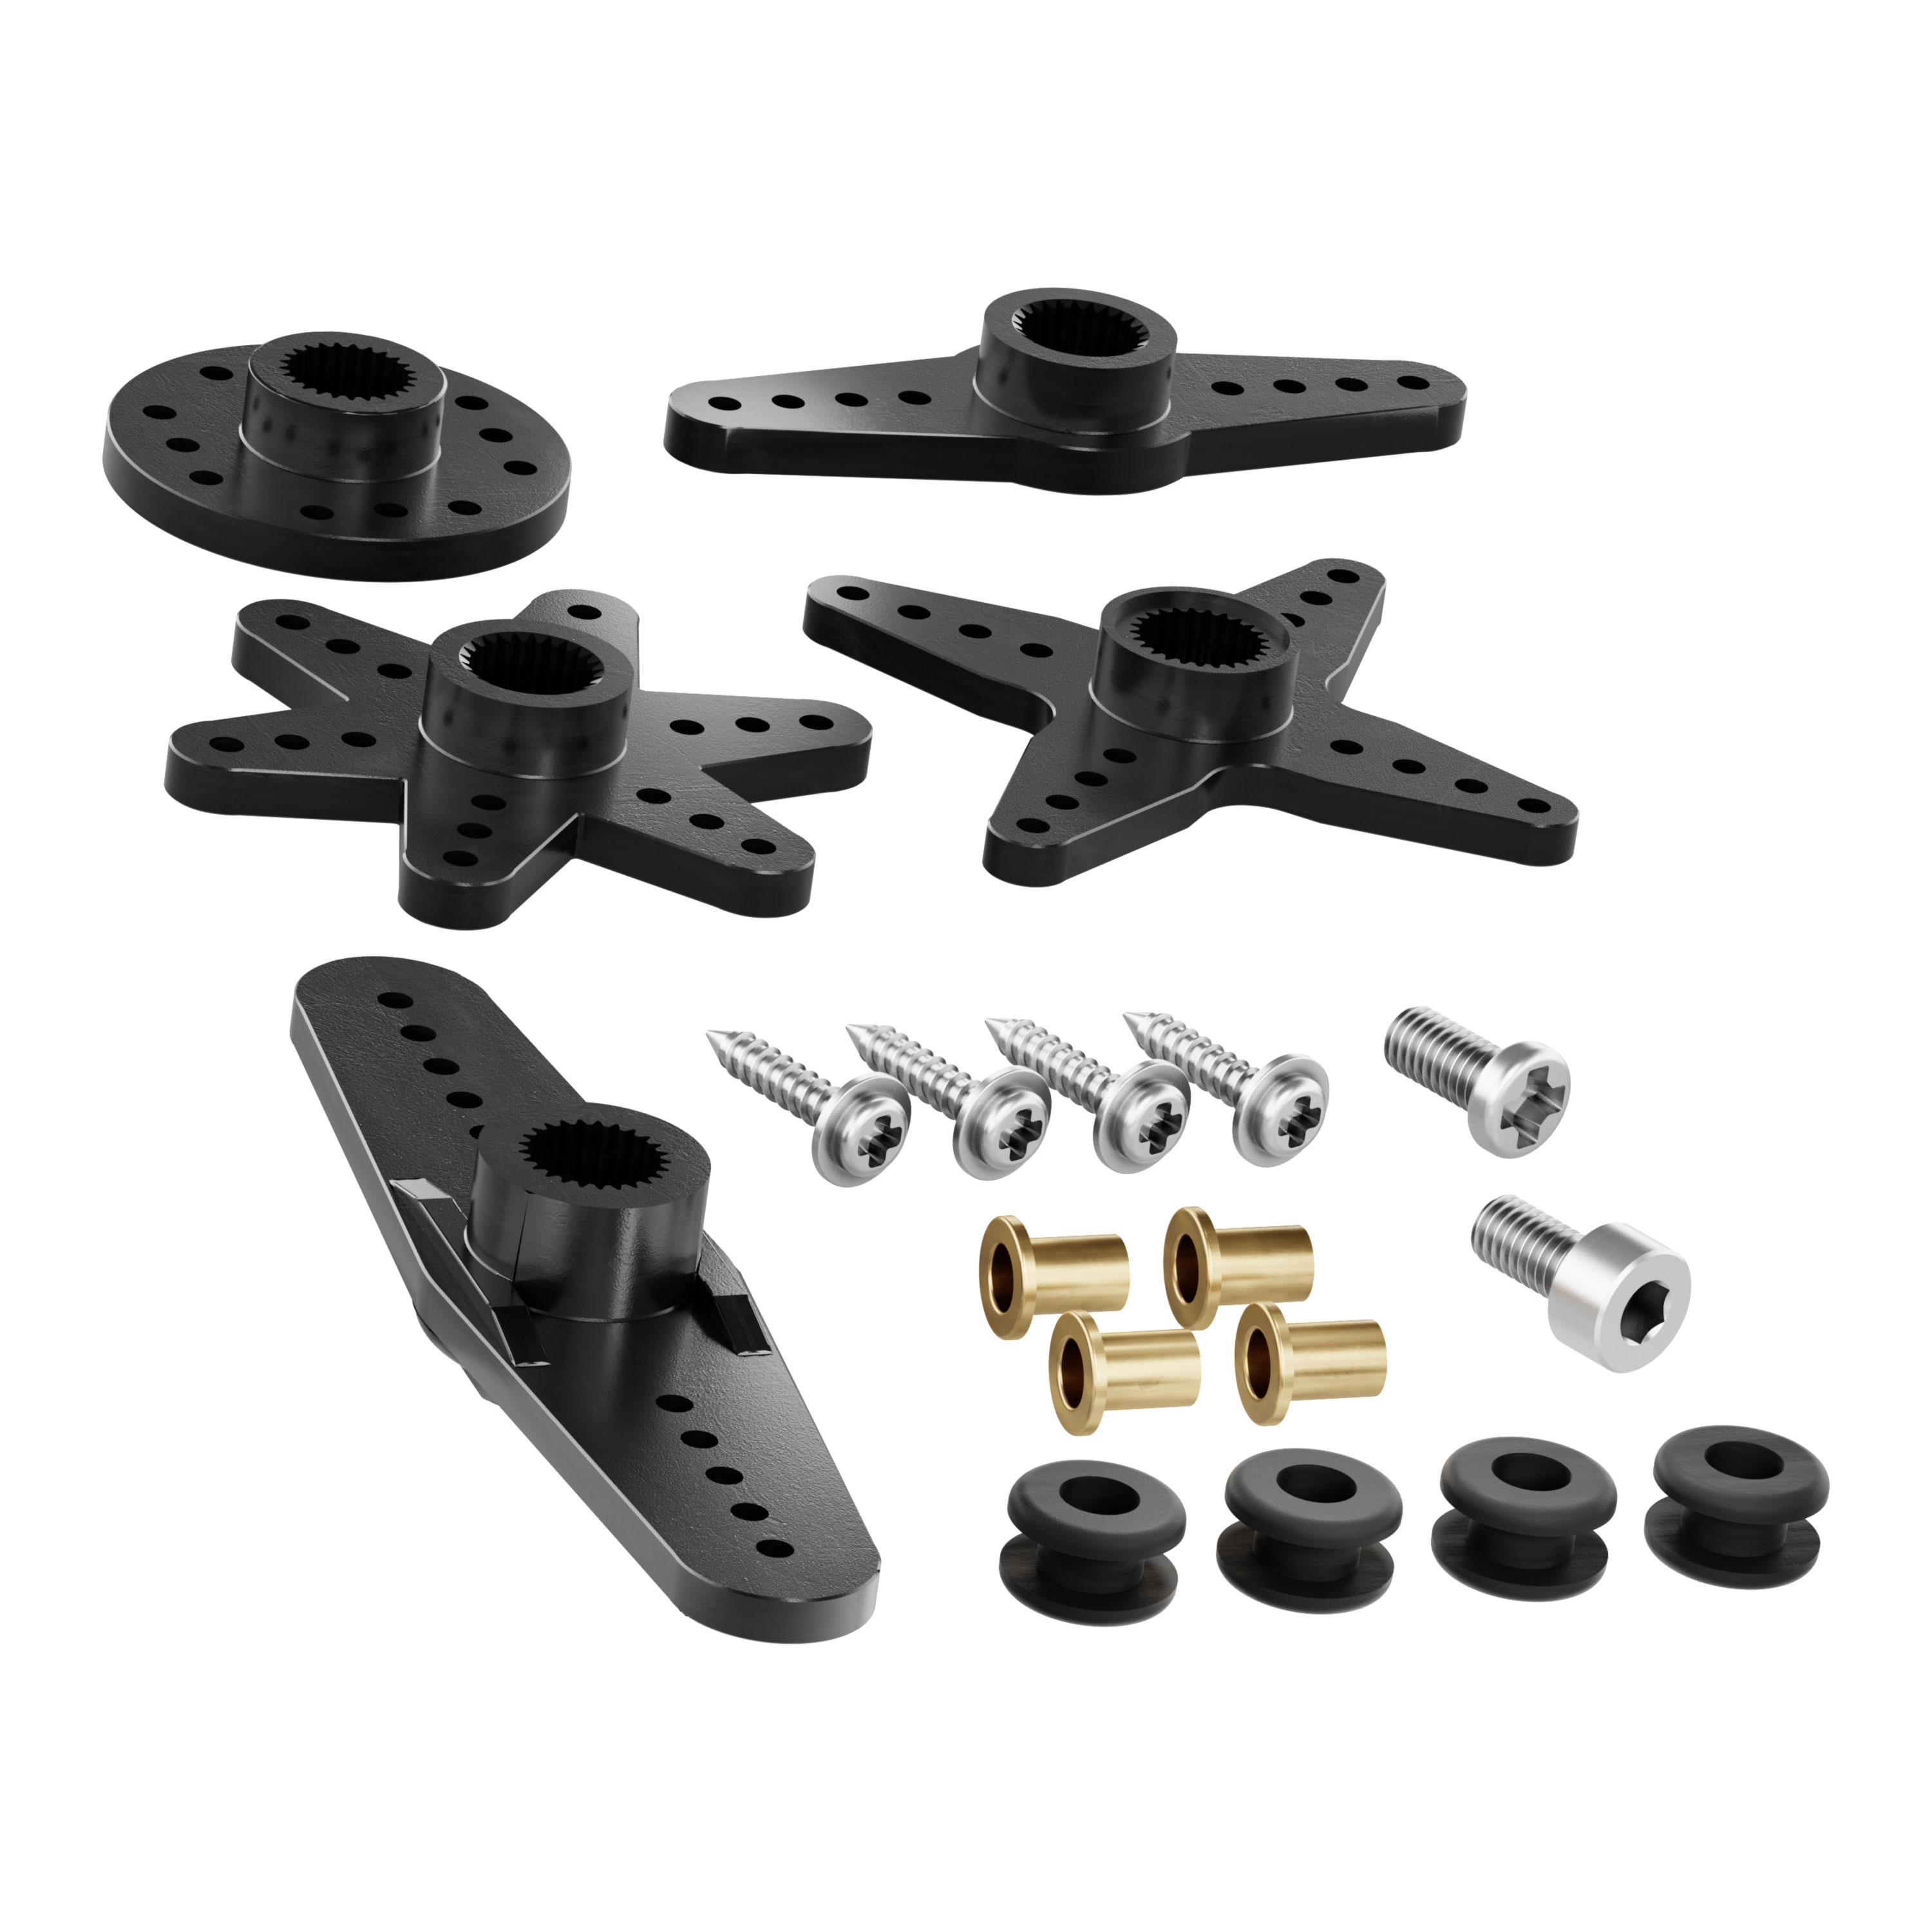 H25T Spline Servo Hardware Pack (25-1)